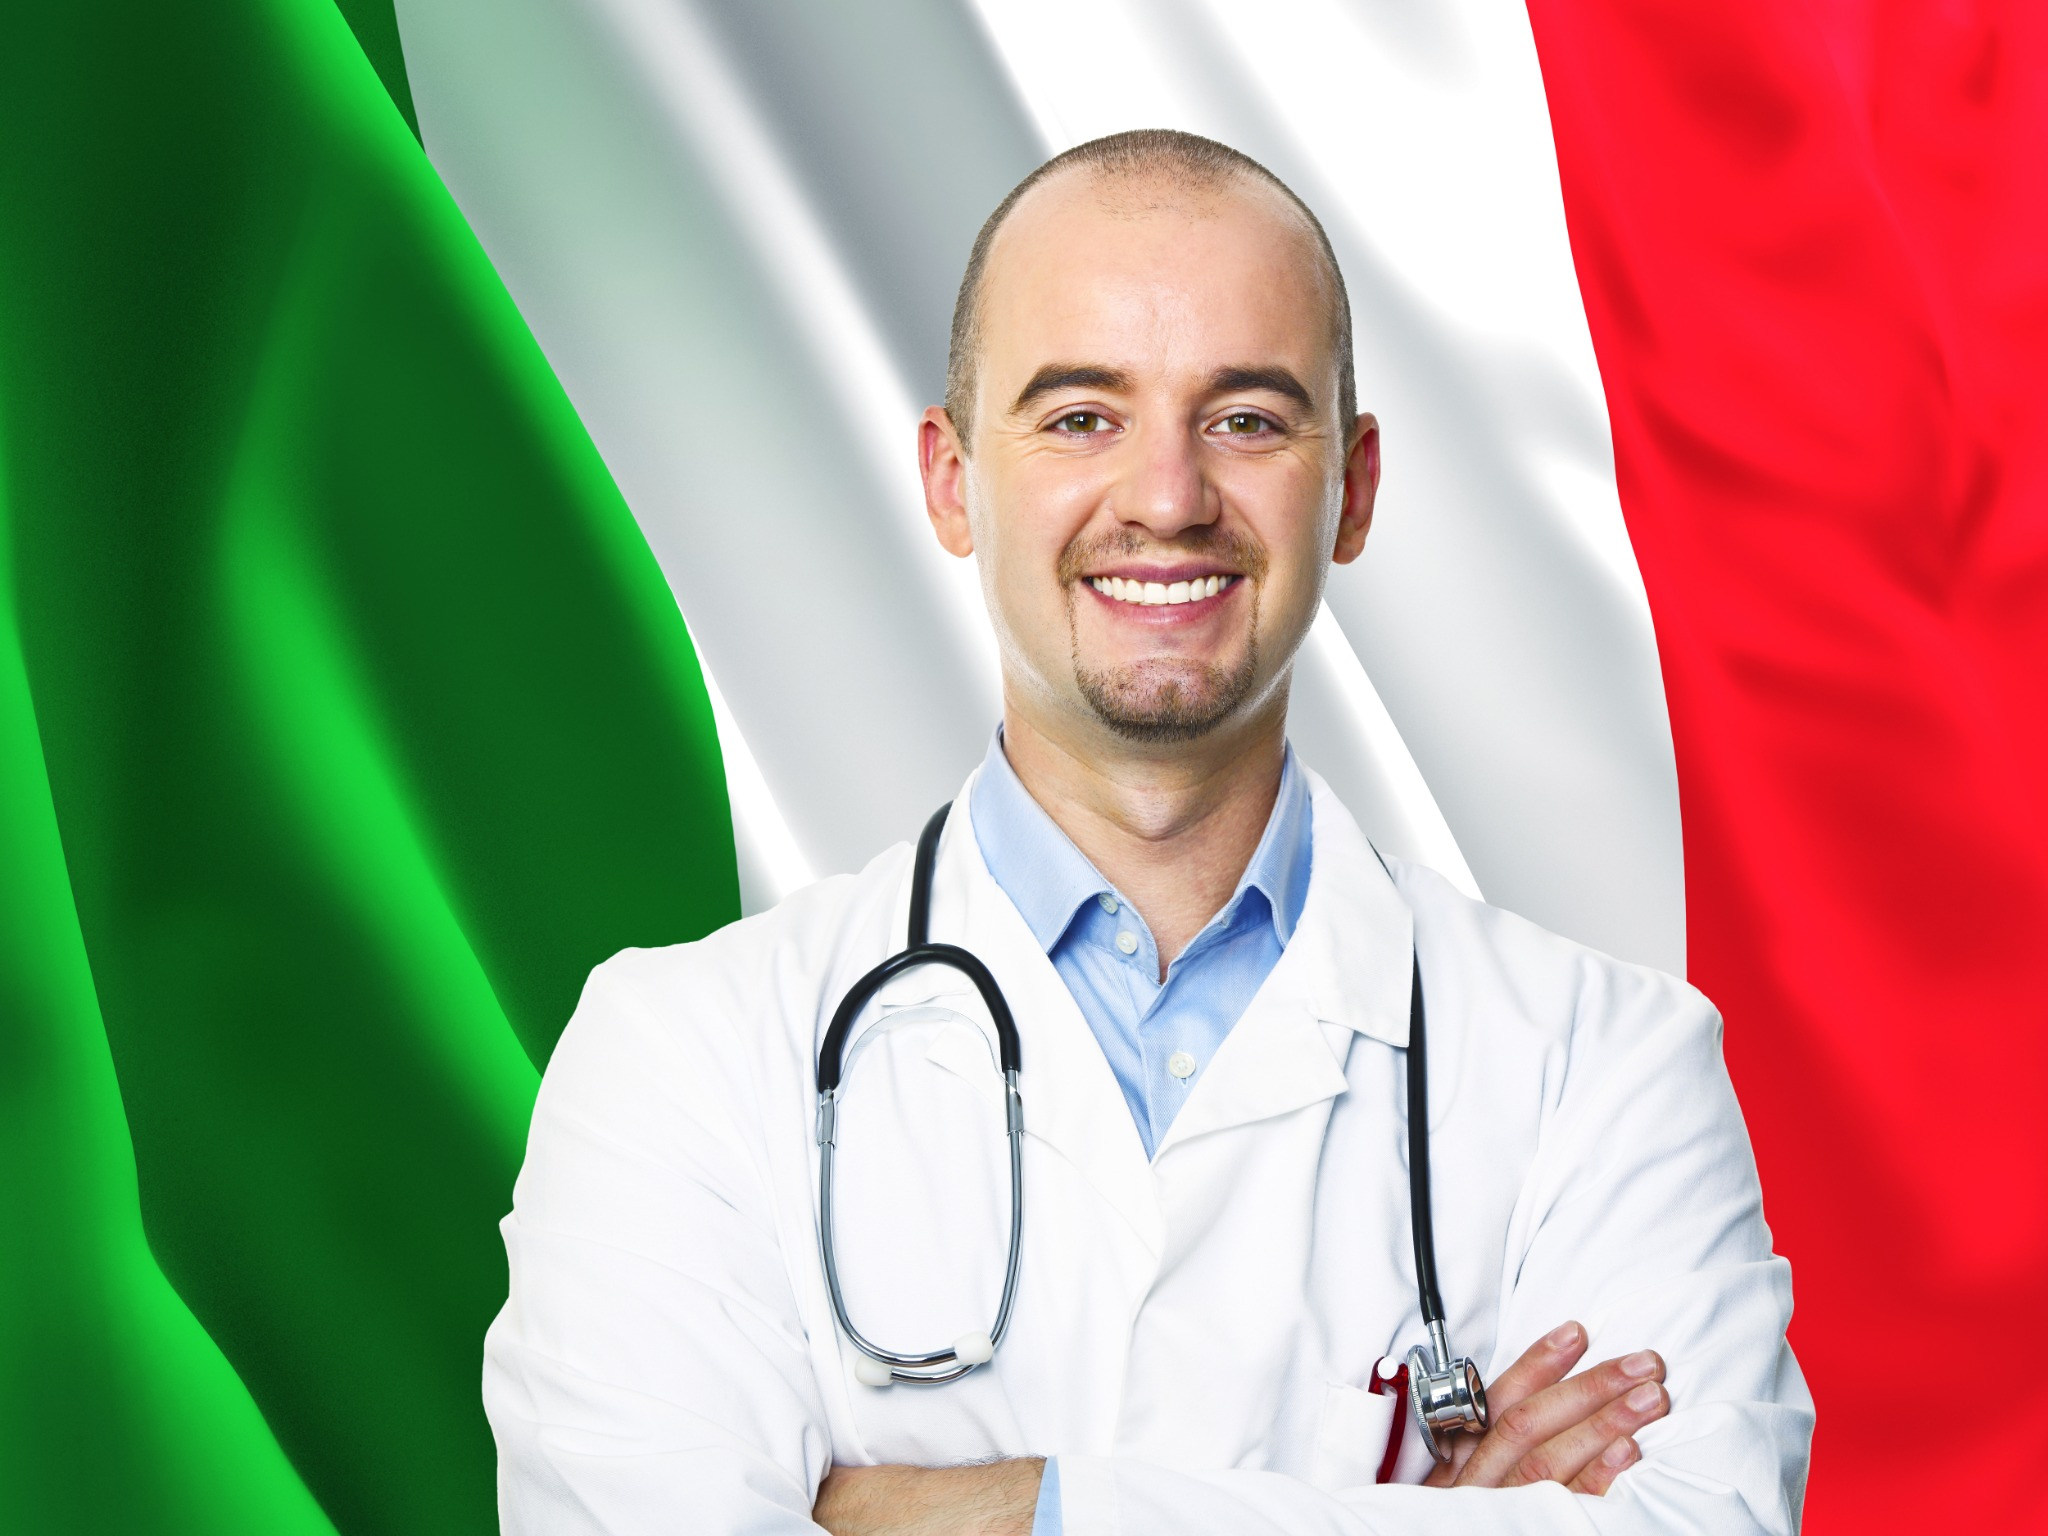 How Does The Italian Healthcare System Work For Citizens?